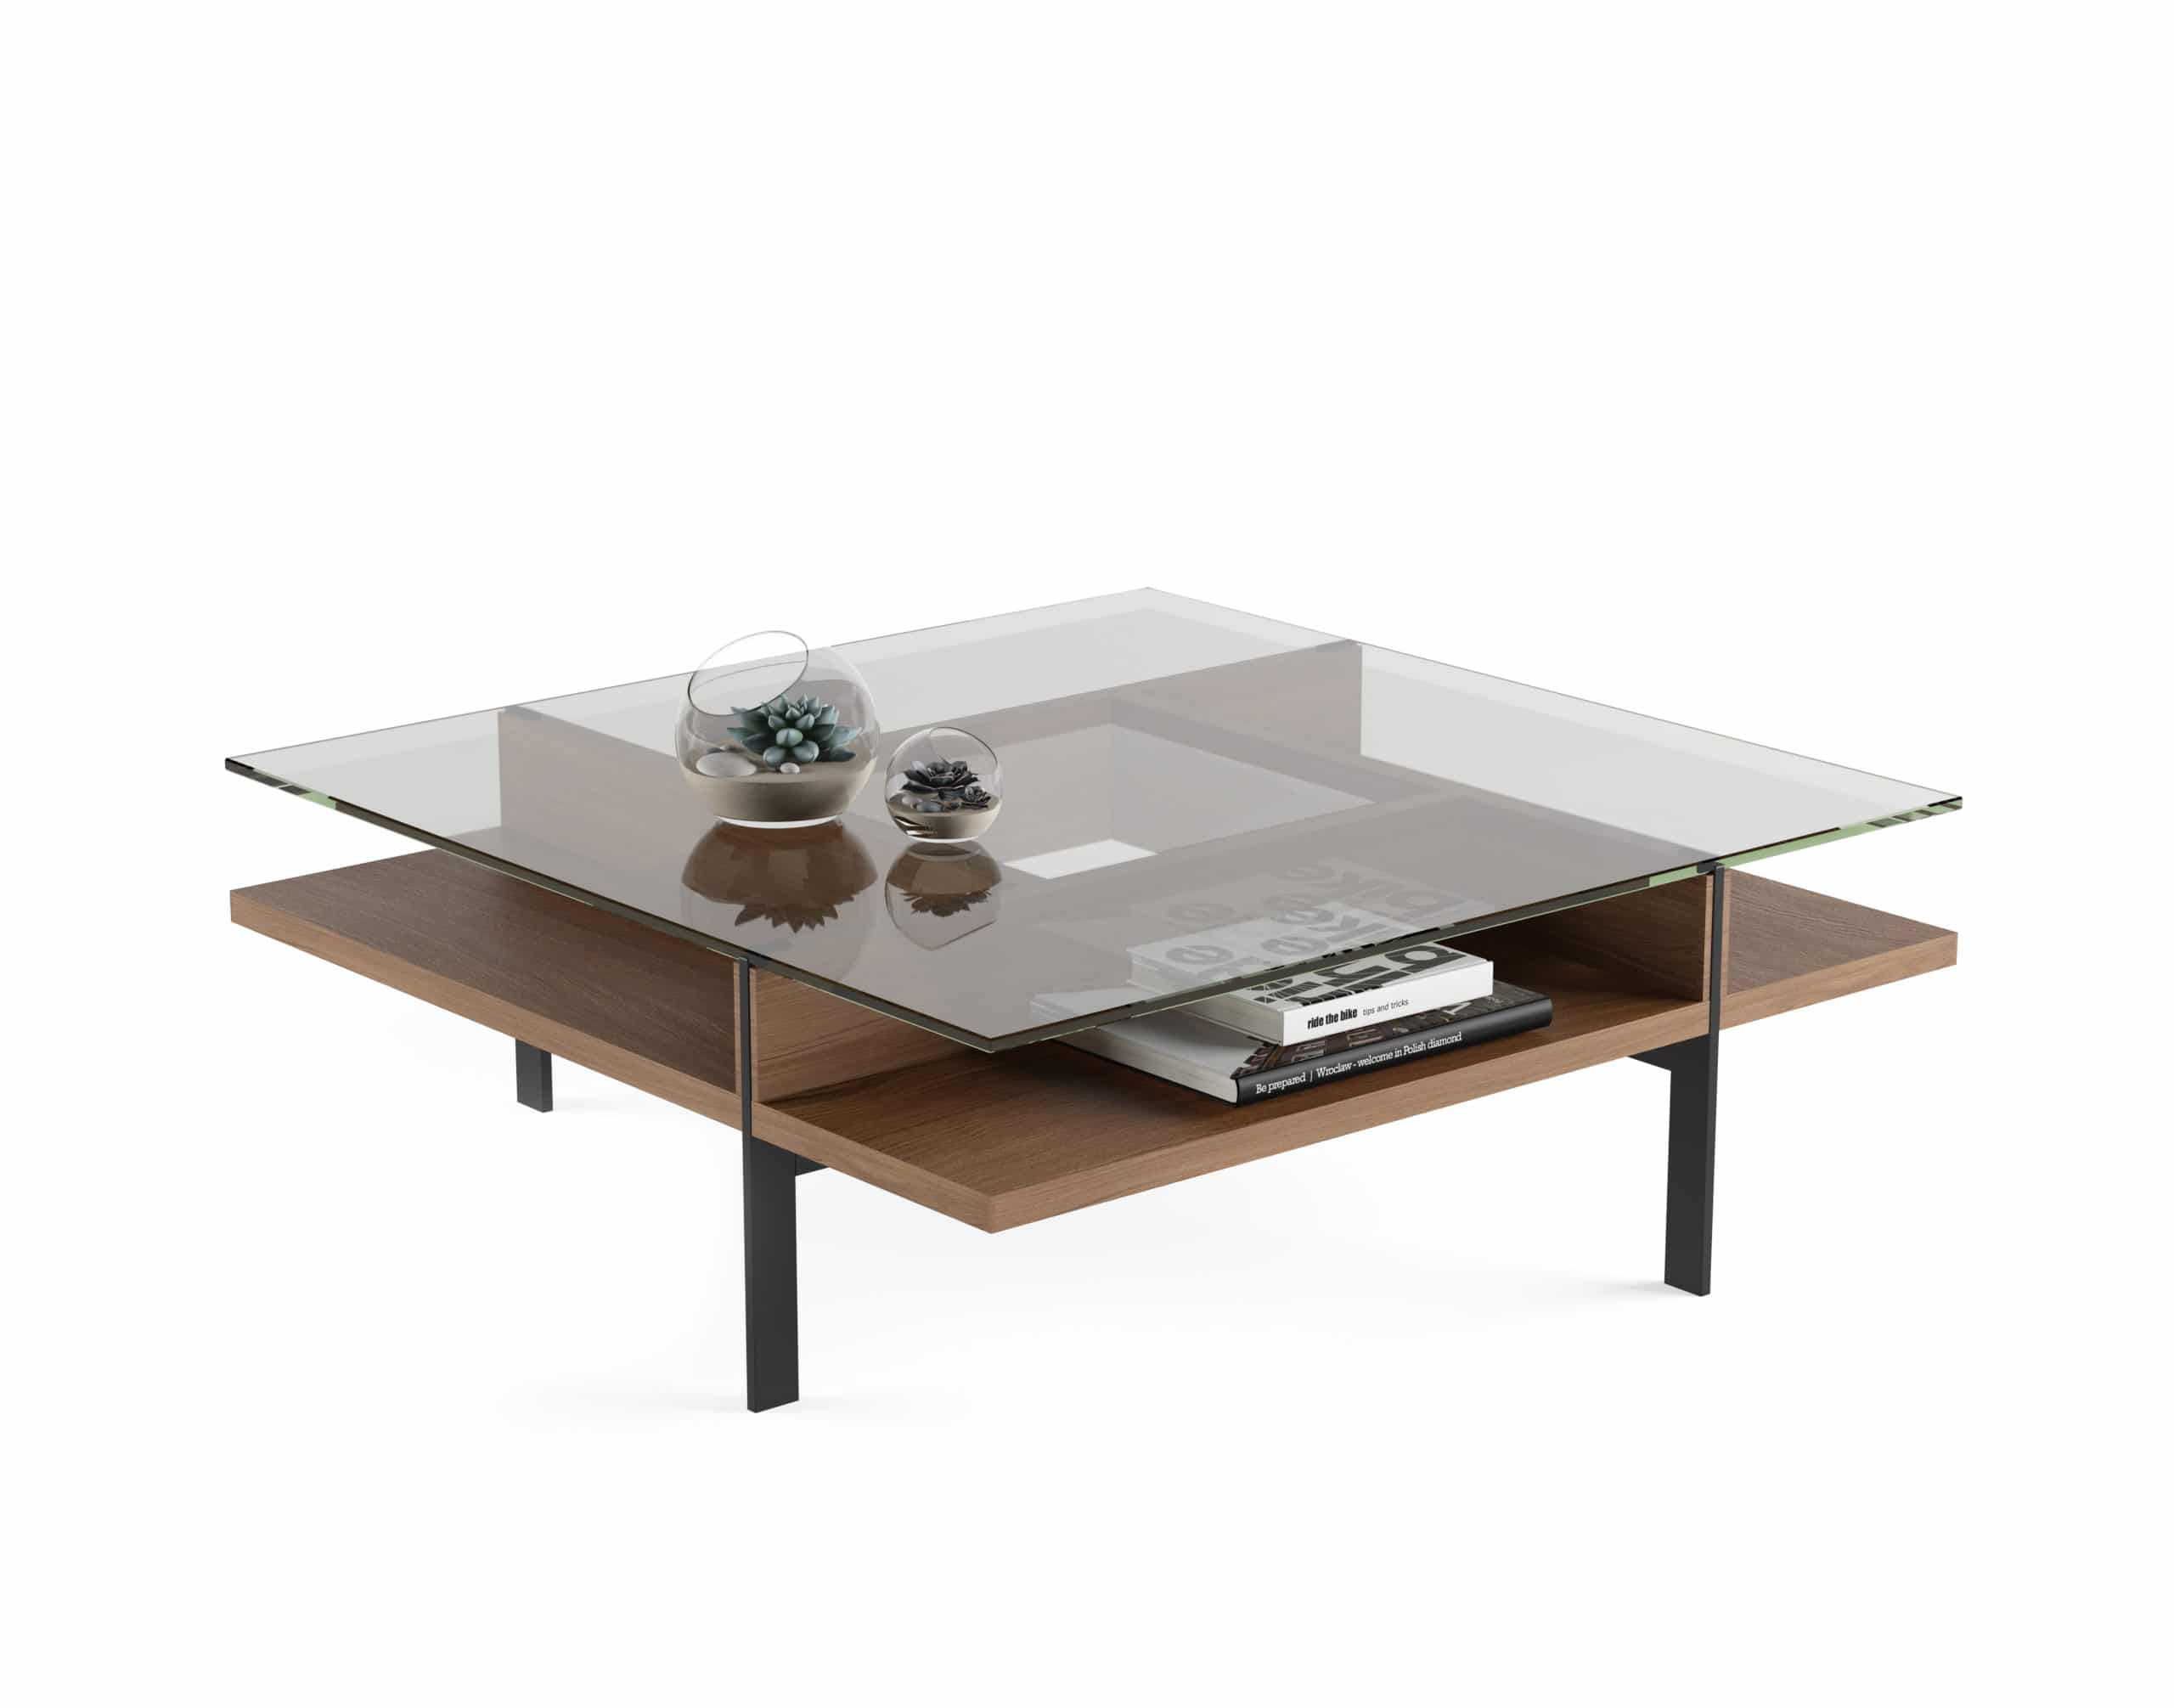 Terrace 1150 Modern Square Glass Coffee Table | BDI Furniture